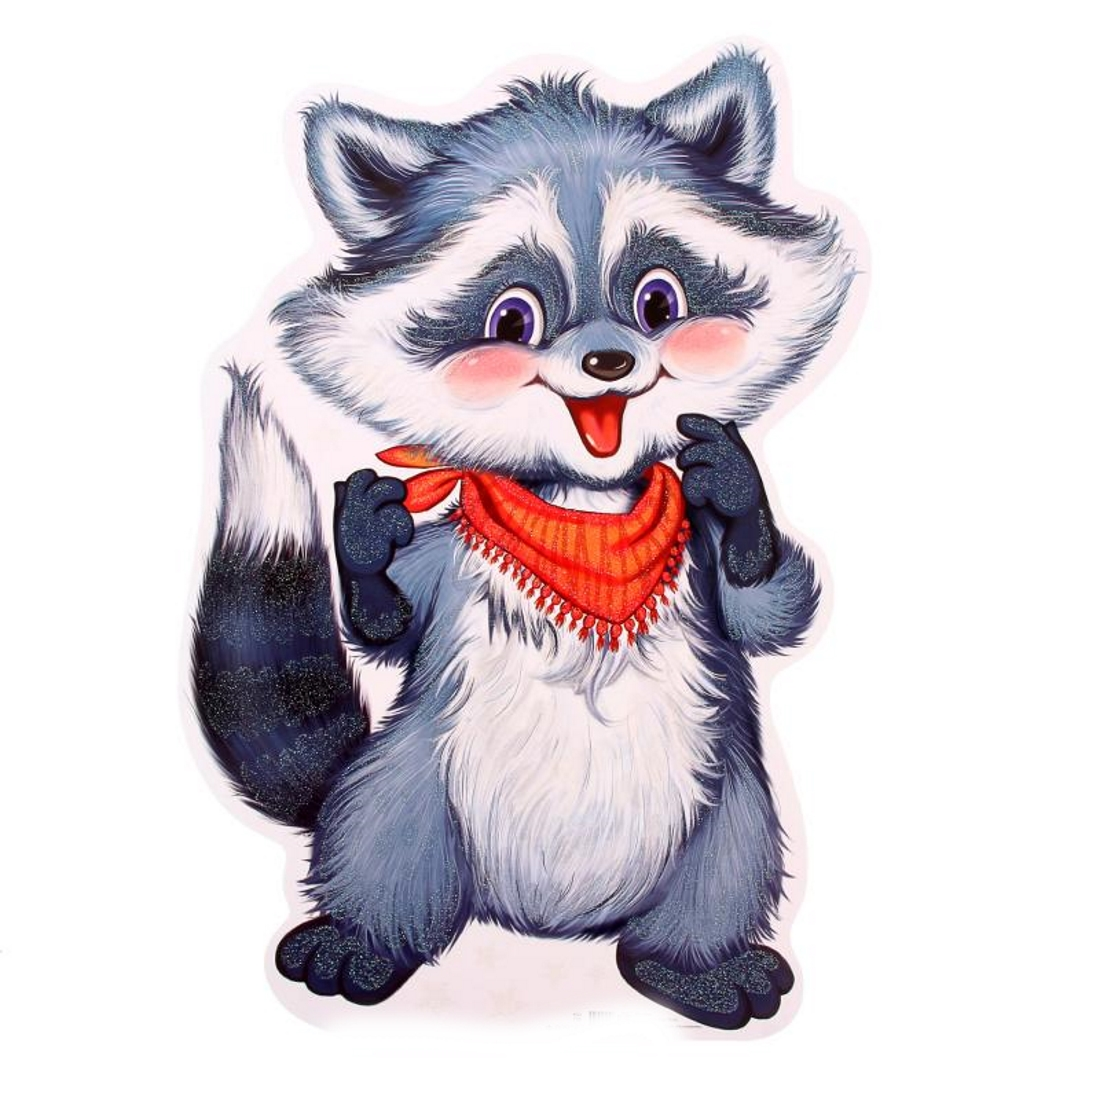 Raccoon pictures for kids to color ASL American Sign Language